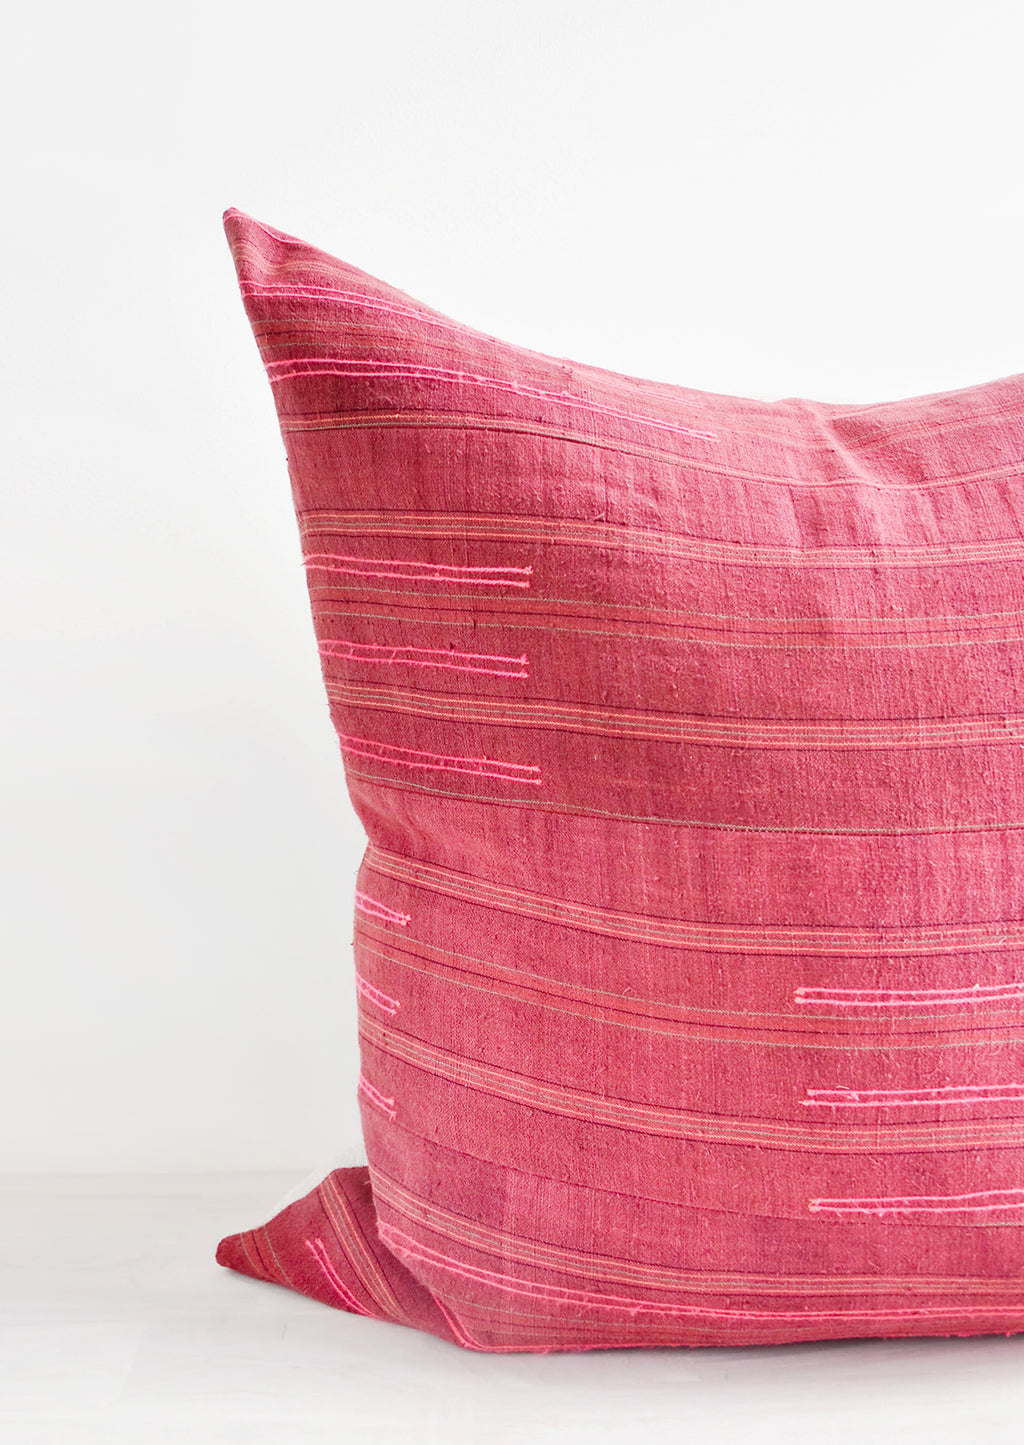 3: Wine Colored Recycled Thai Fabric Square Throw Pillow with Hot Pink Embroidery Detailing